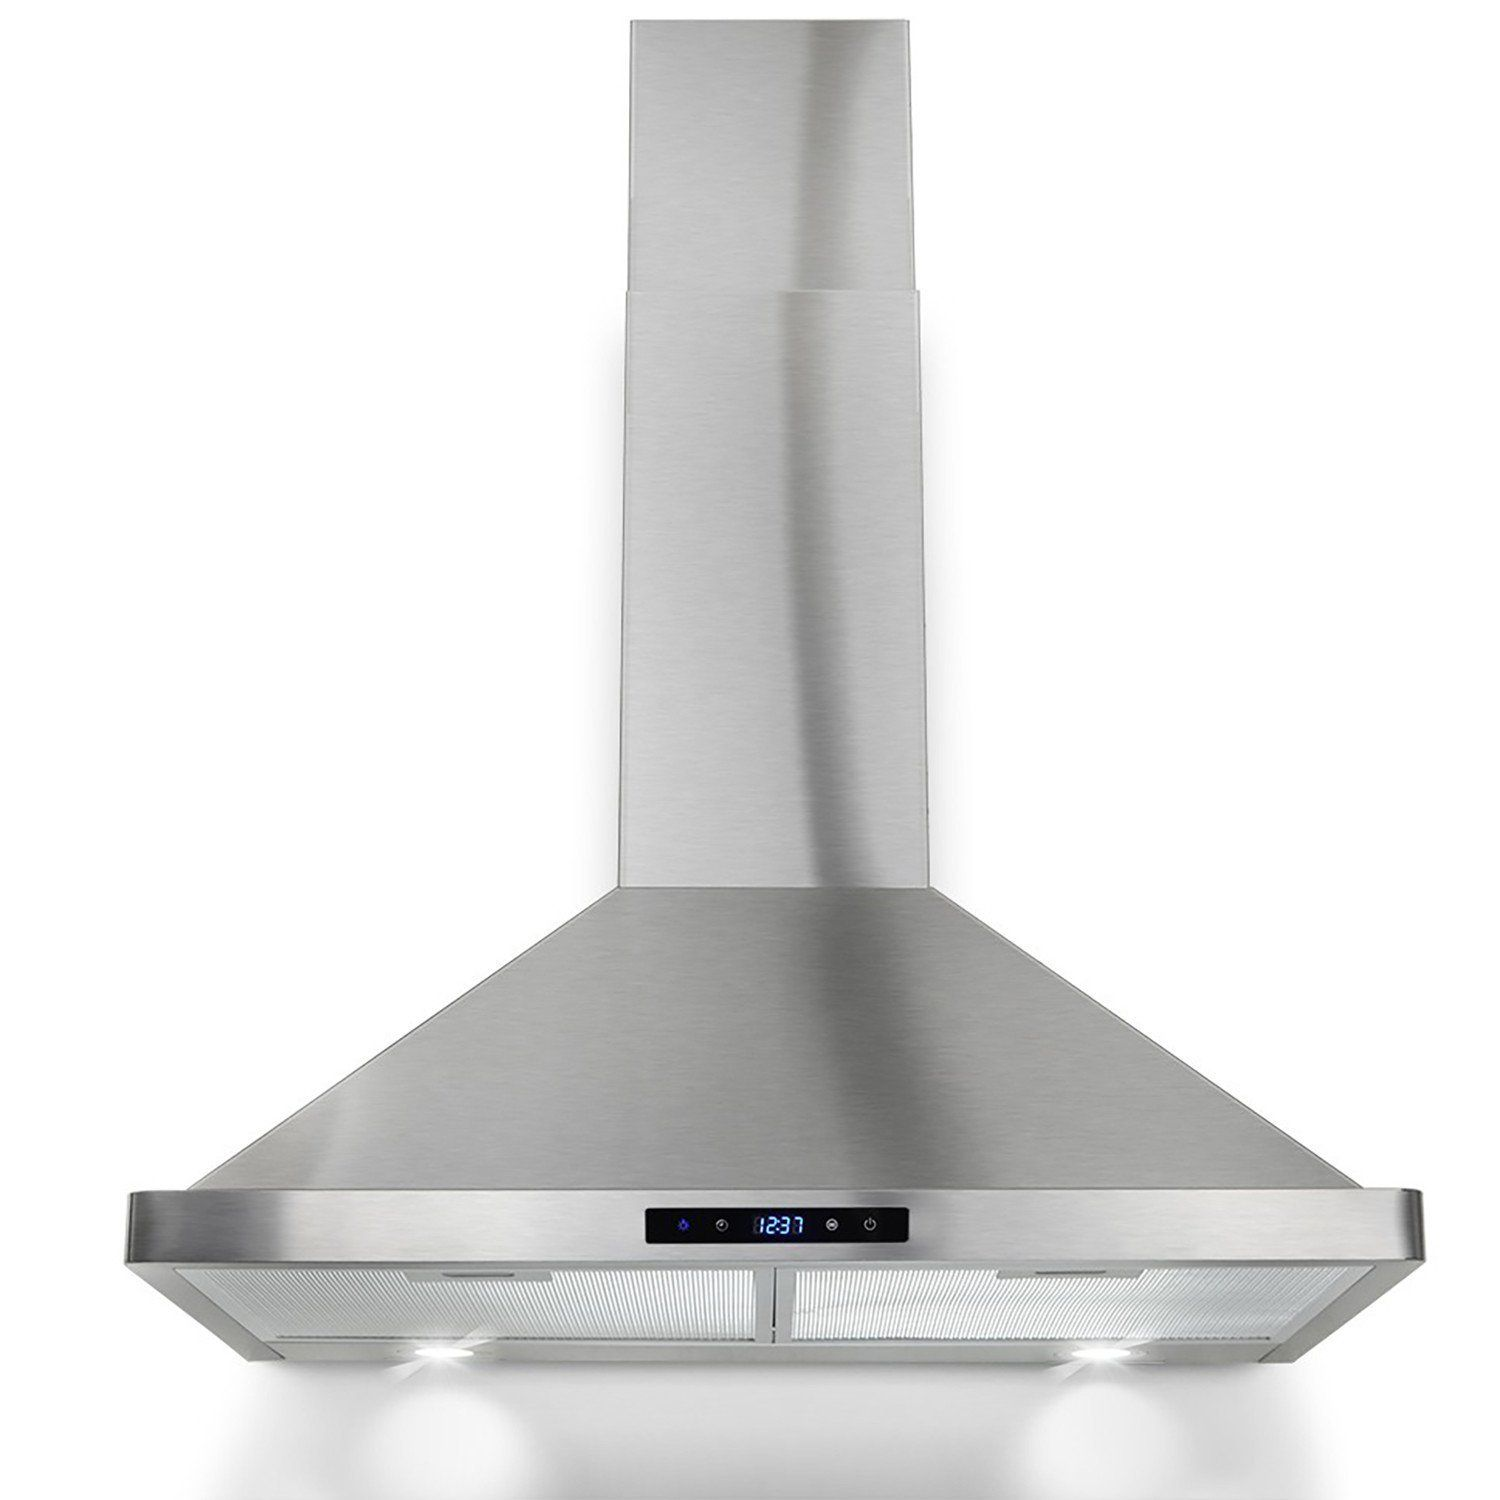 Winflo 30 Wall Mount Stainless Steel Convertible Kitchen Range Hood With 450 Cfm Air Flow Led Display Touch Control I Range Hood Kitchen Range Hood Led Lights